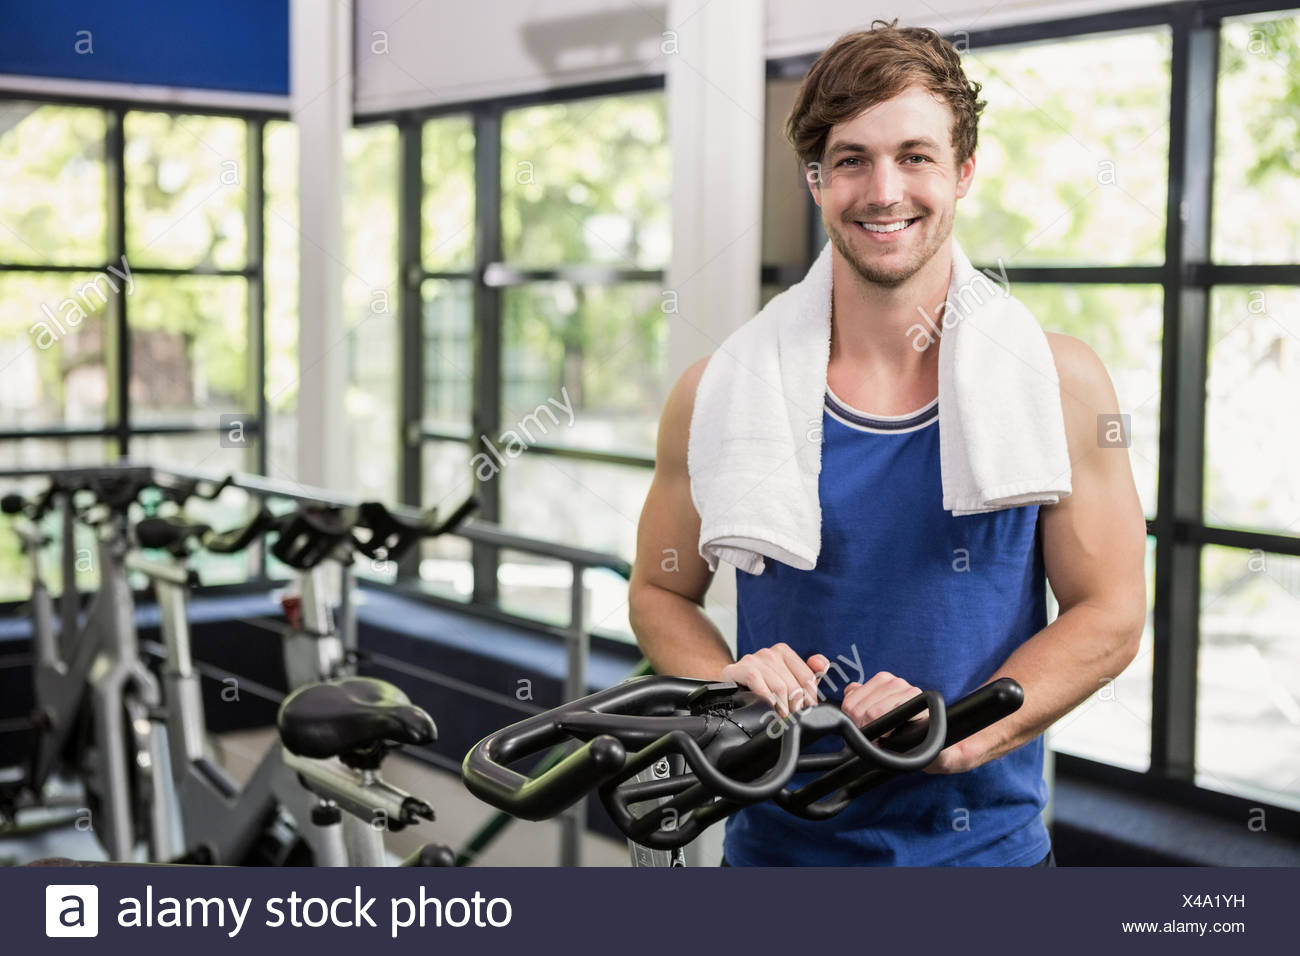 Man standing in spinning class - Stock Image